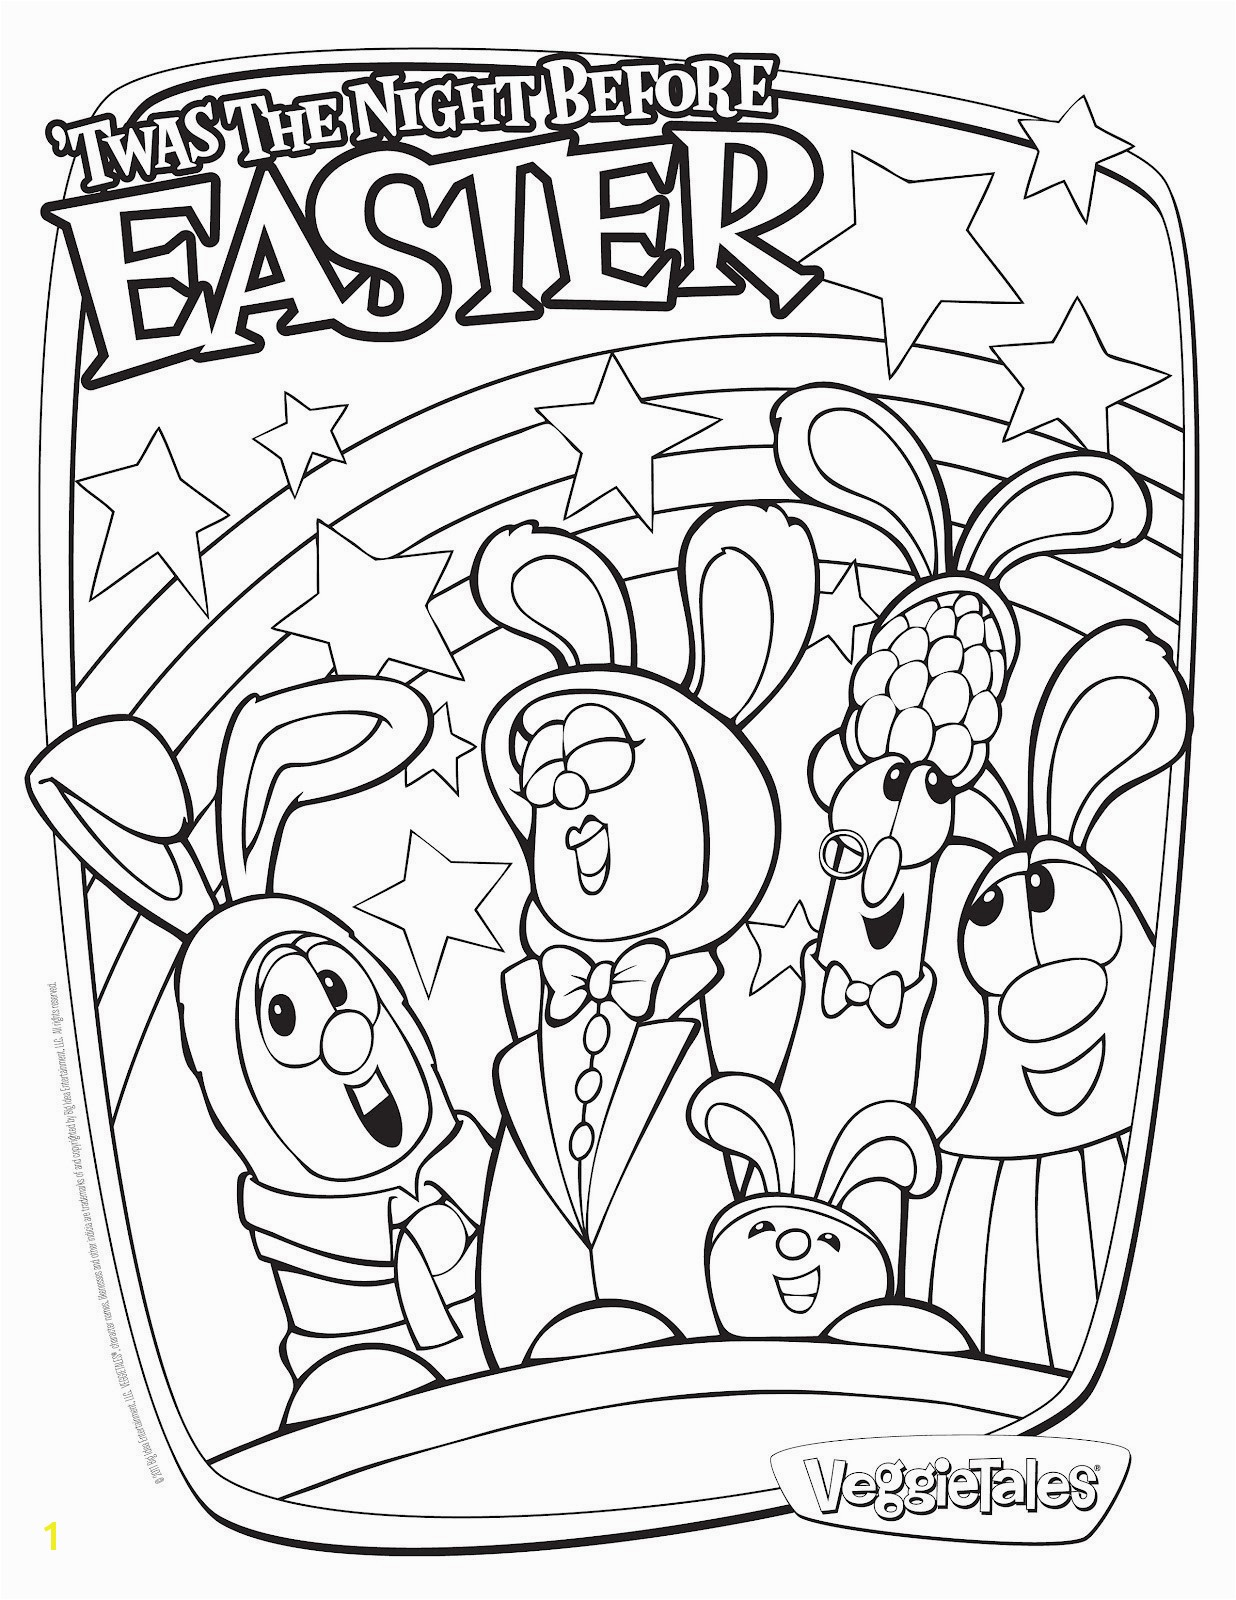 Christian Easter Coloring Pages Inspirational Christian Easter Coloring Pages New Coloring Book Easter Refrence